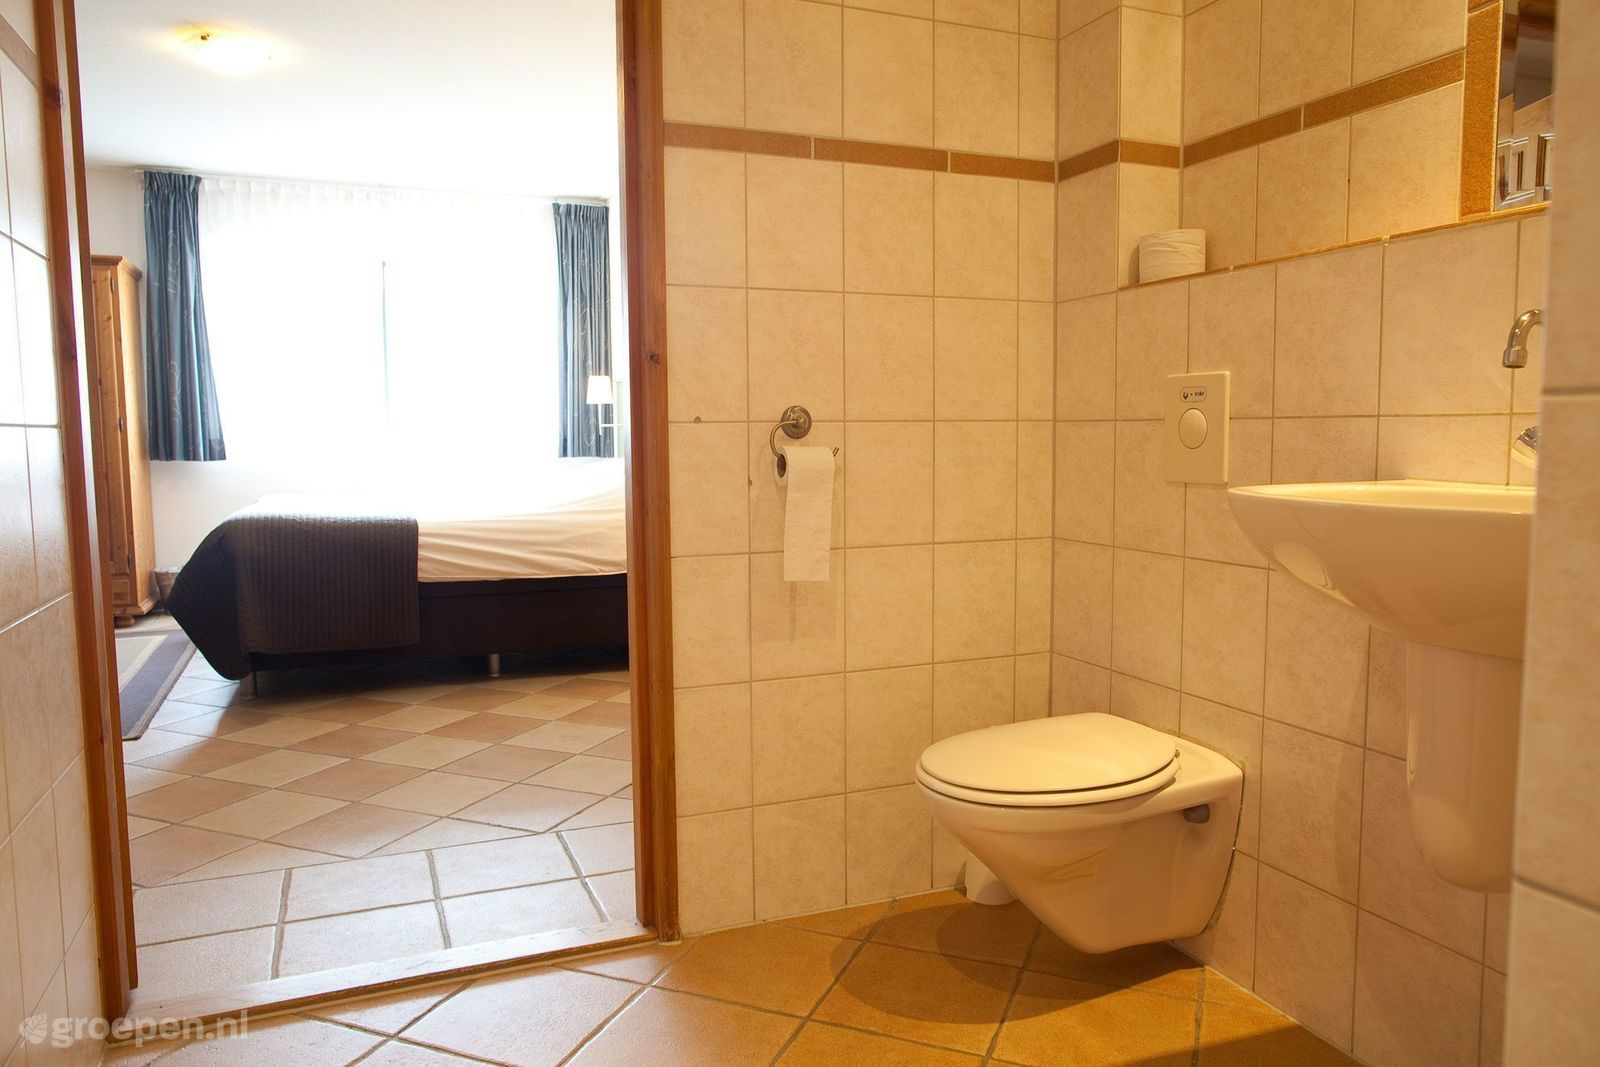 2e Toilet Plaatsen.Holidayhome In Haaksbergen Province Of Overijssel For 24 Persons